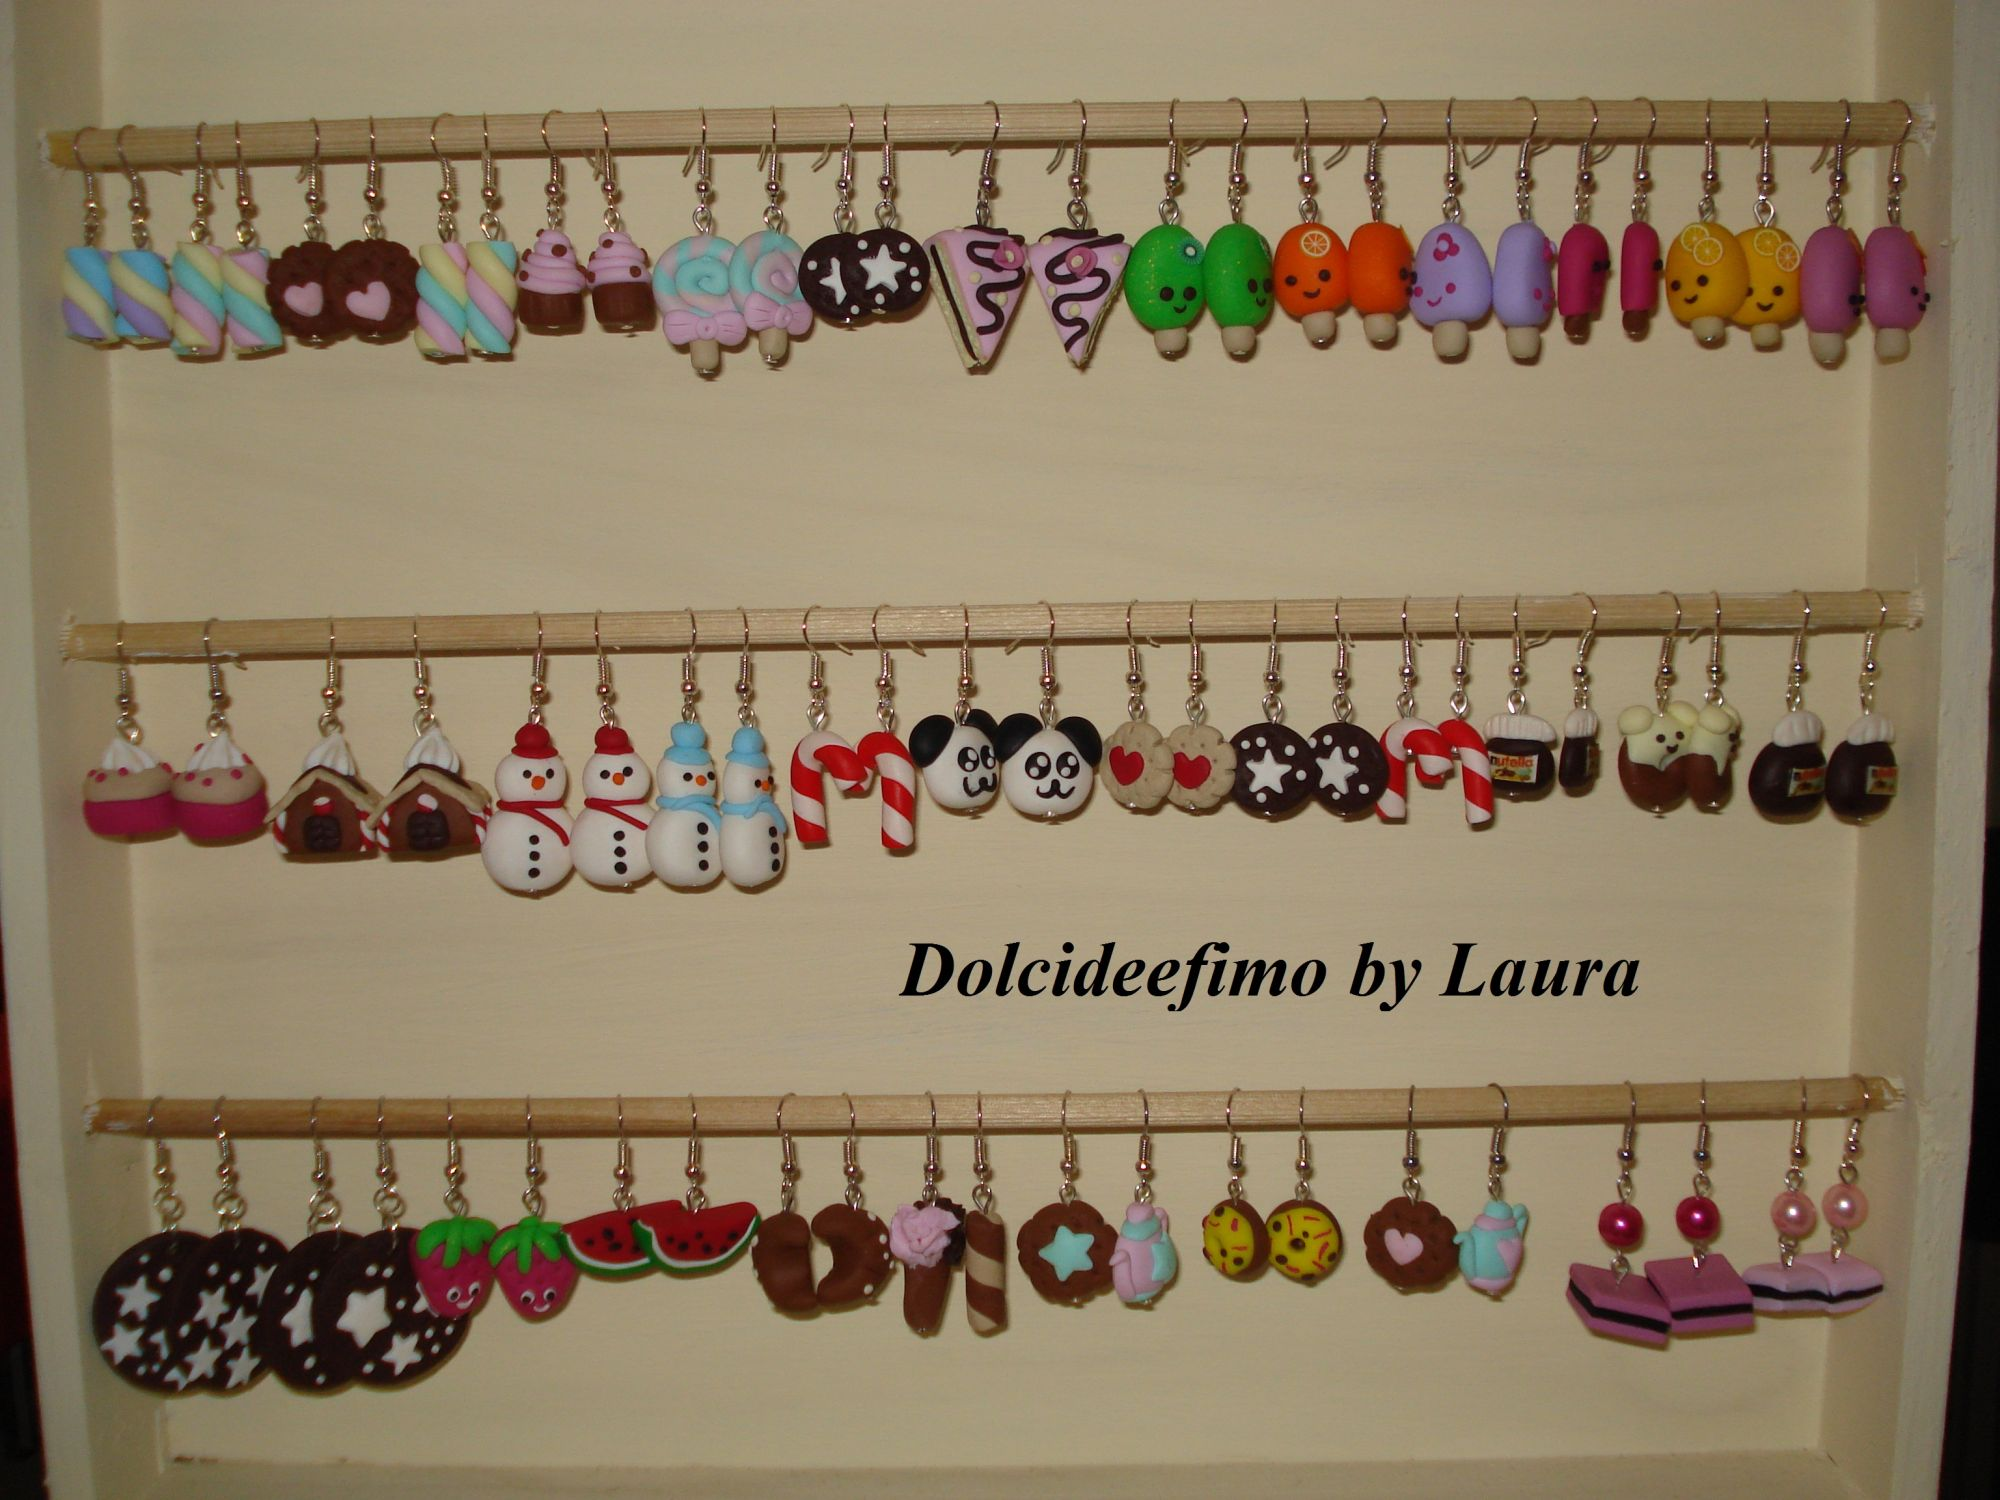 Dolcideefimo by Laura